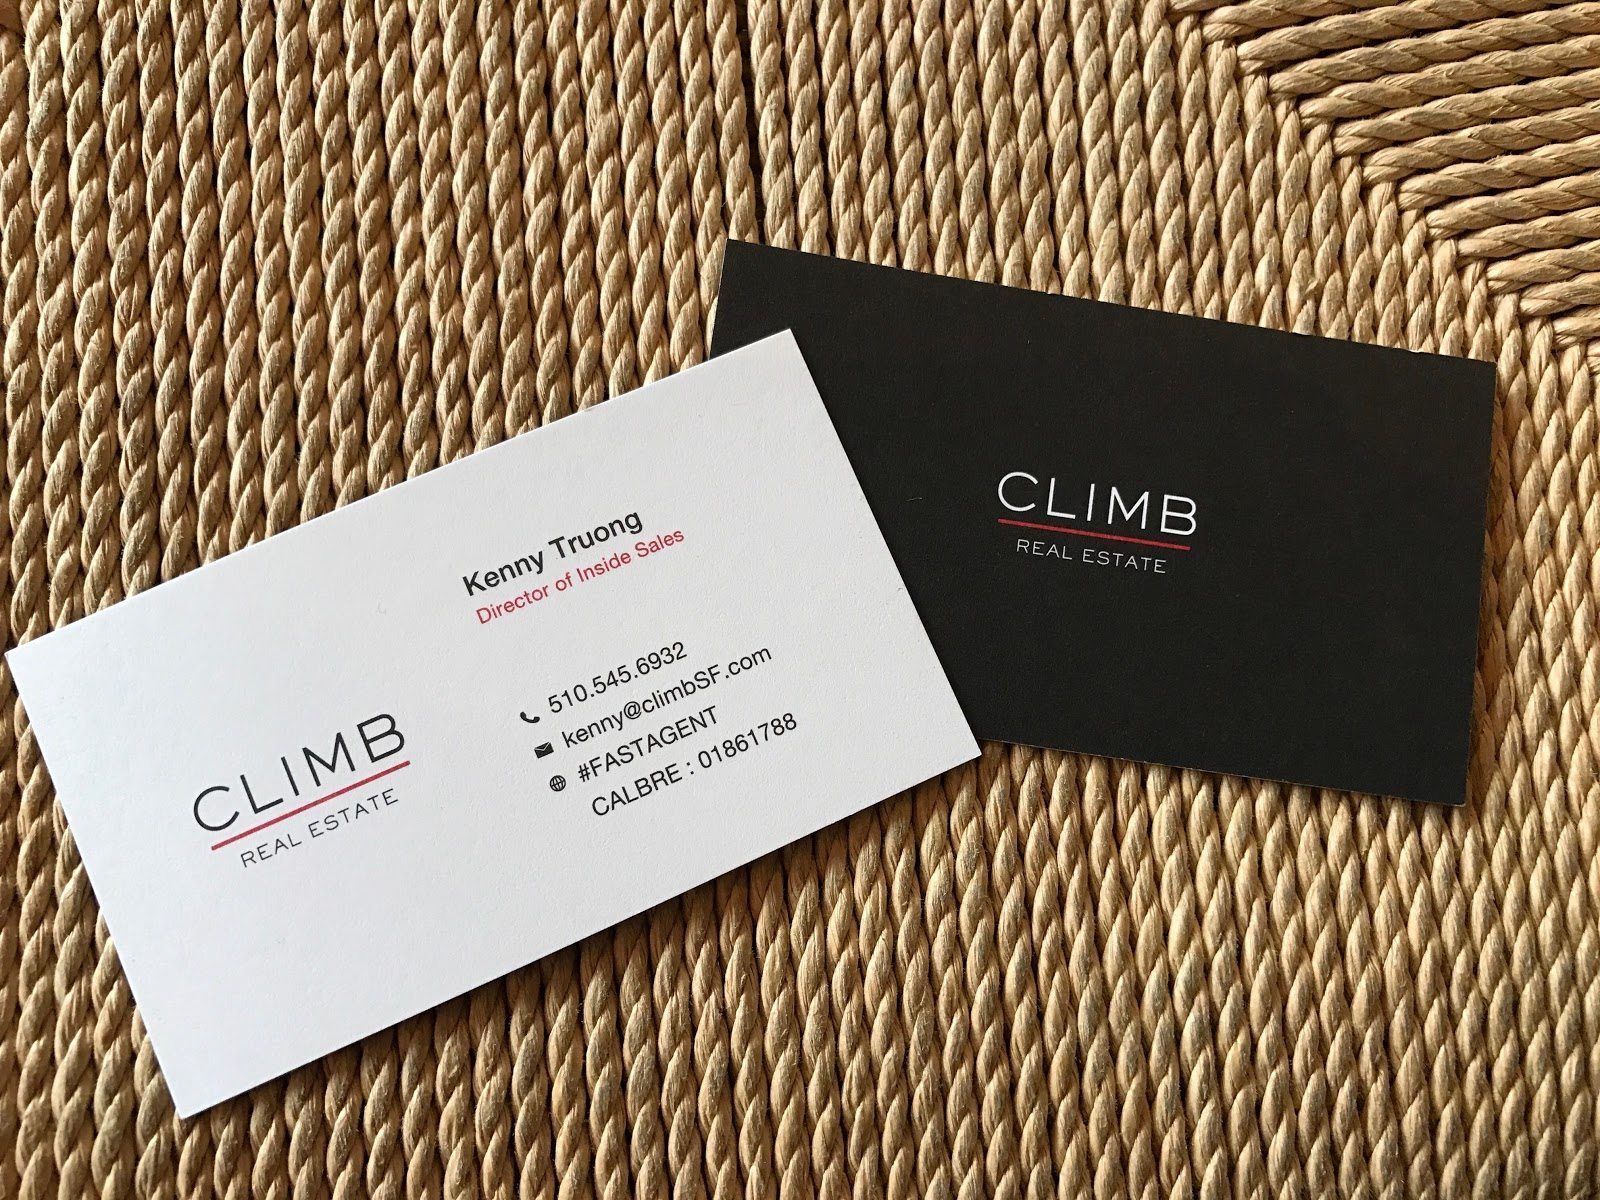 Climb Real Estate Real Estate Business Cards Business Cards